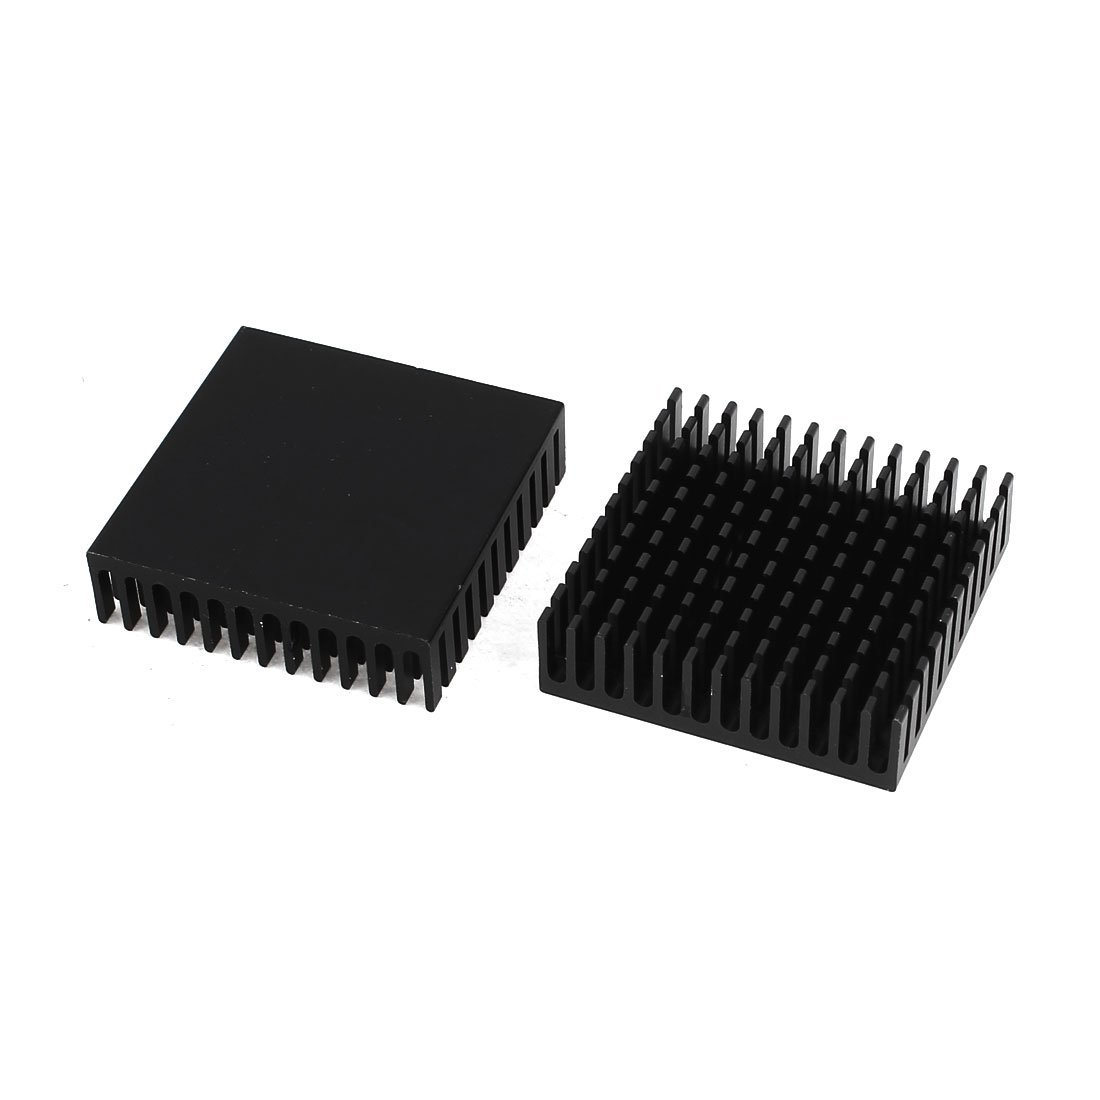 2 X Black Aluminum Radiator Heat Sink Heat Sink 40 X 40 Mm X 11 Mm